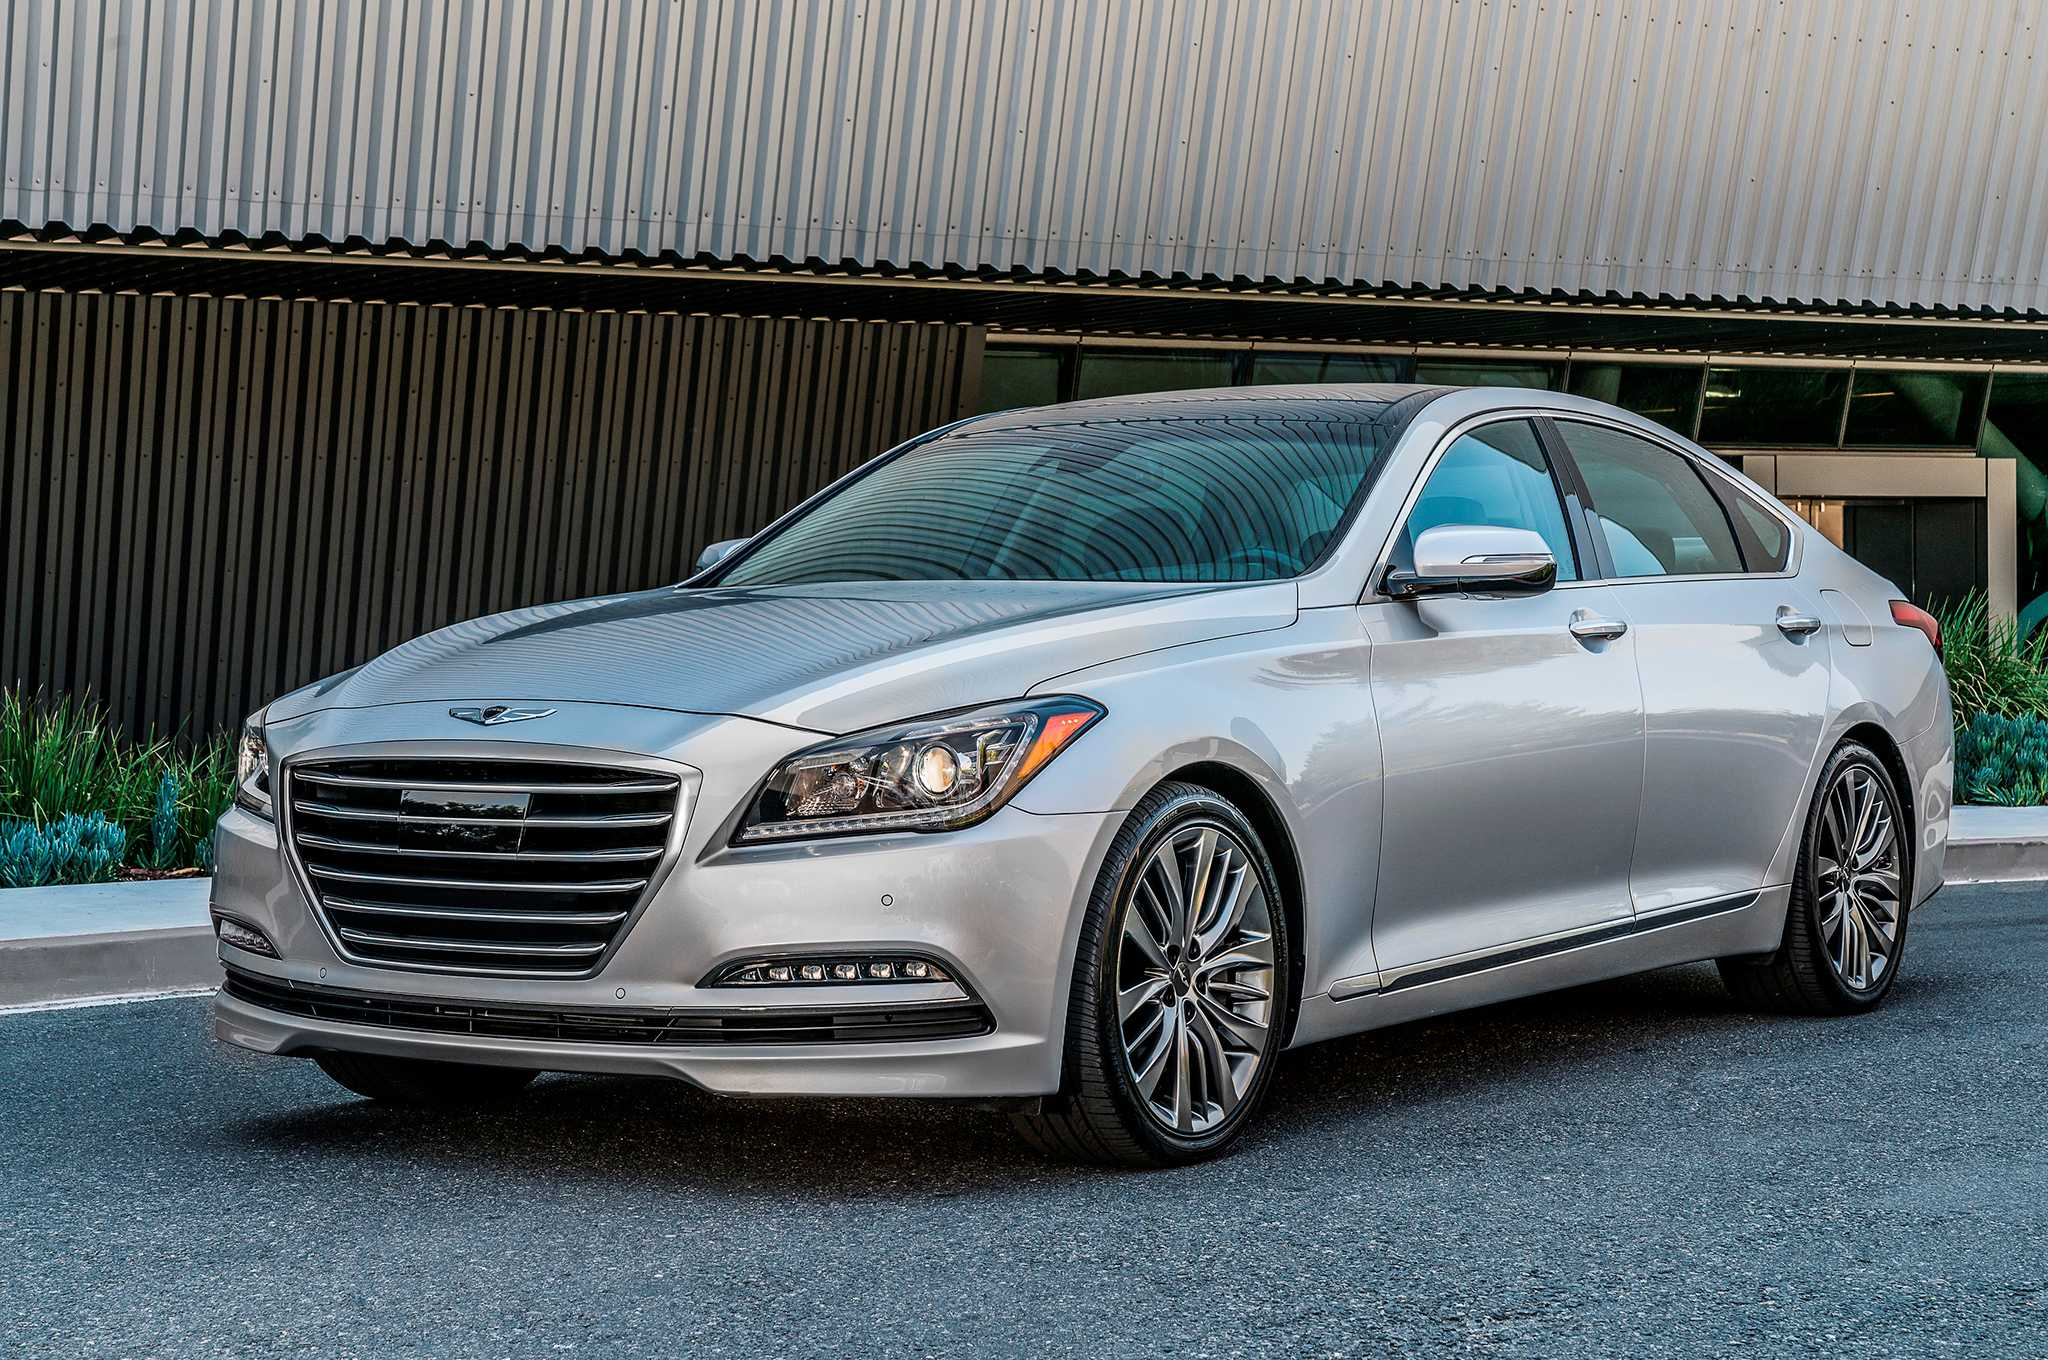 2017 Genesis G80 Pricing Is Higher Than Hyundai Genesis